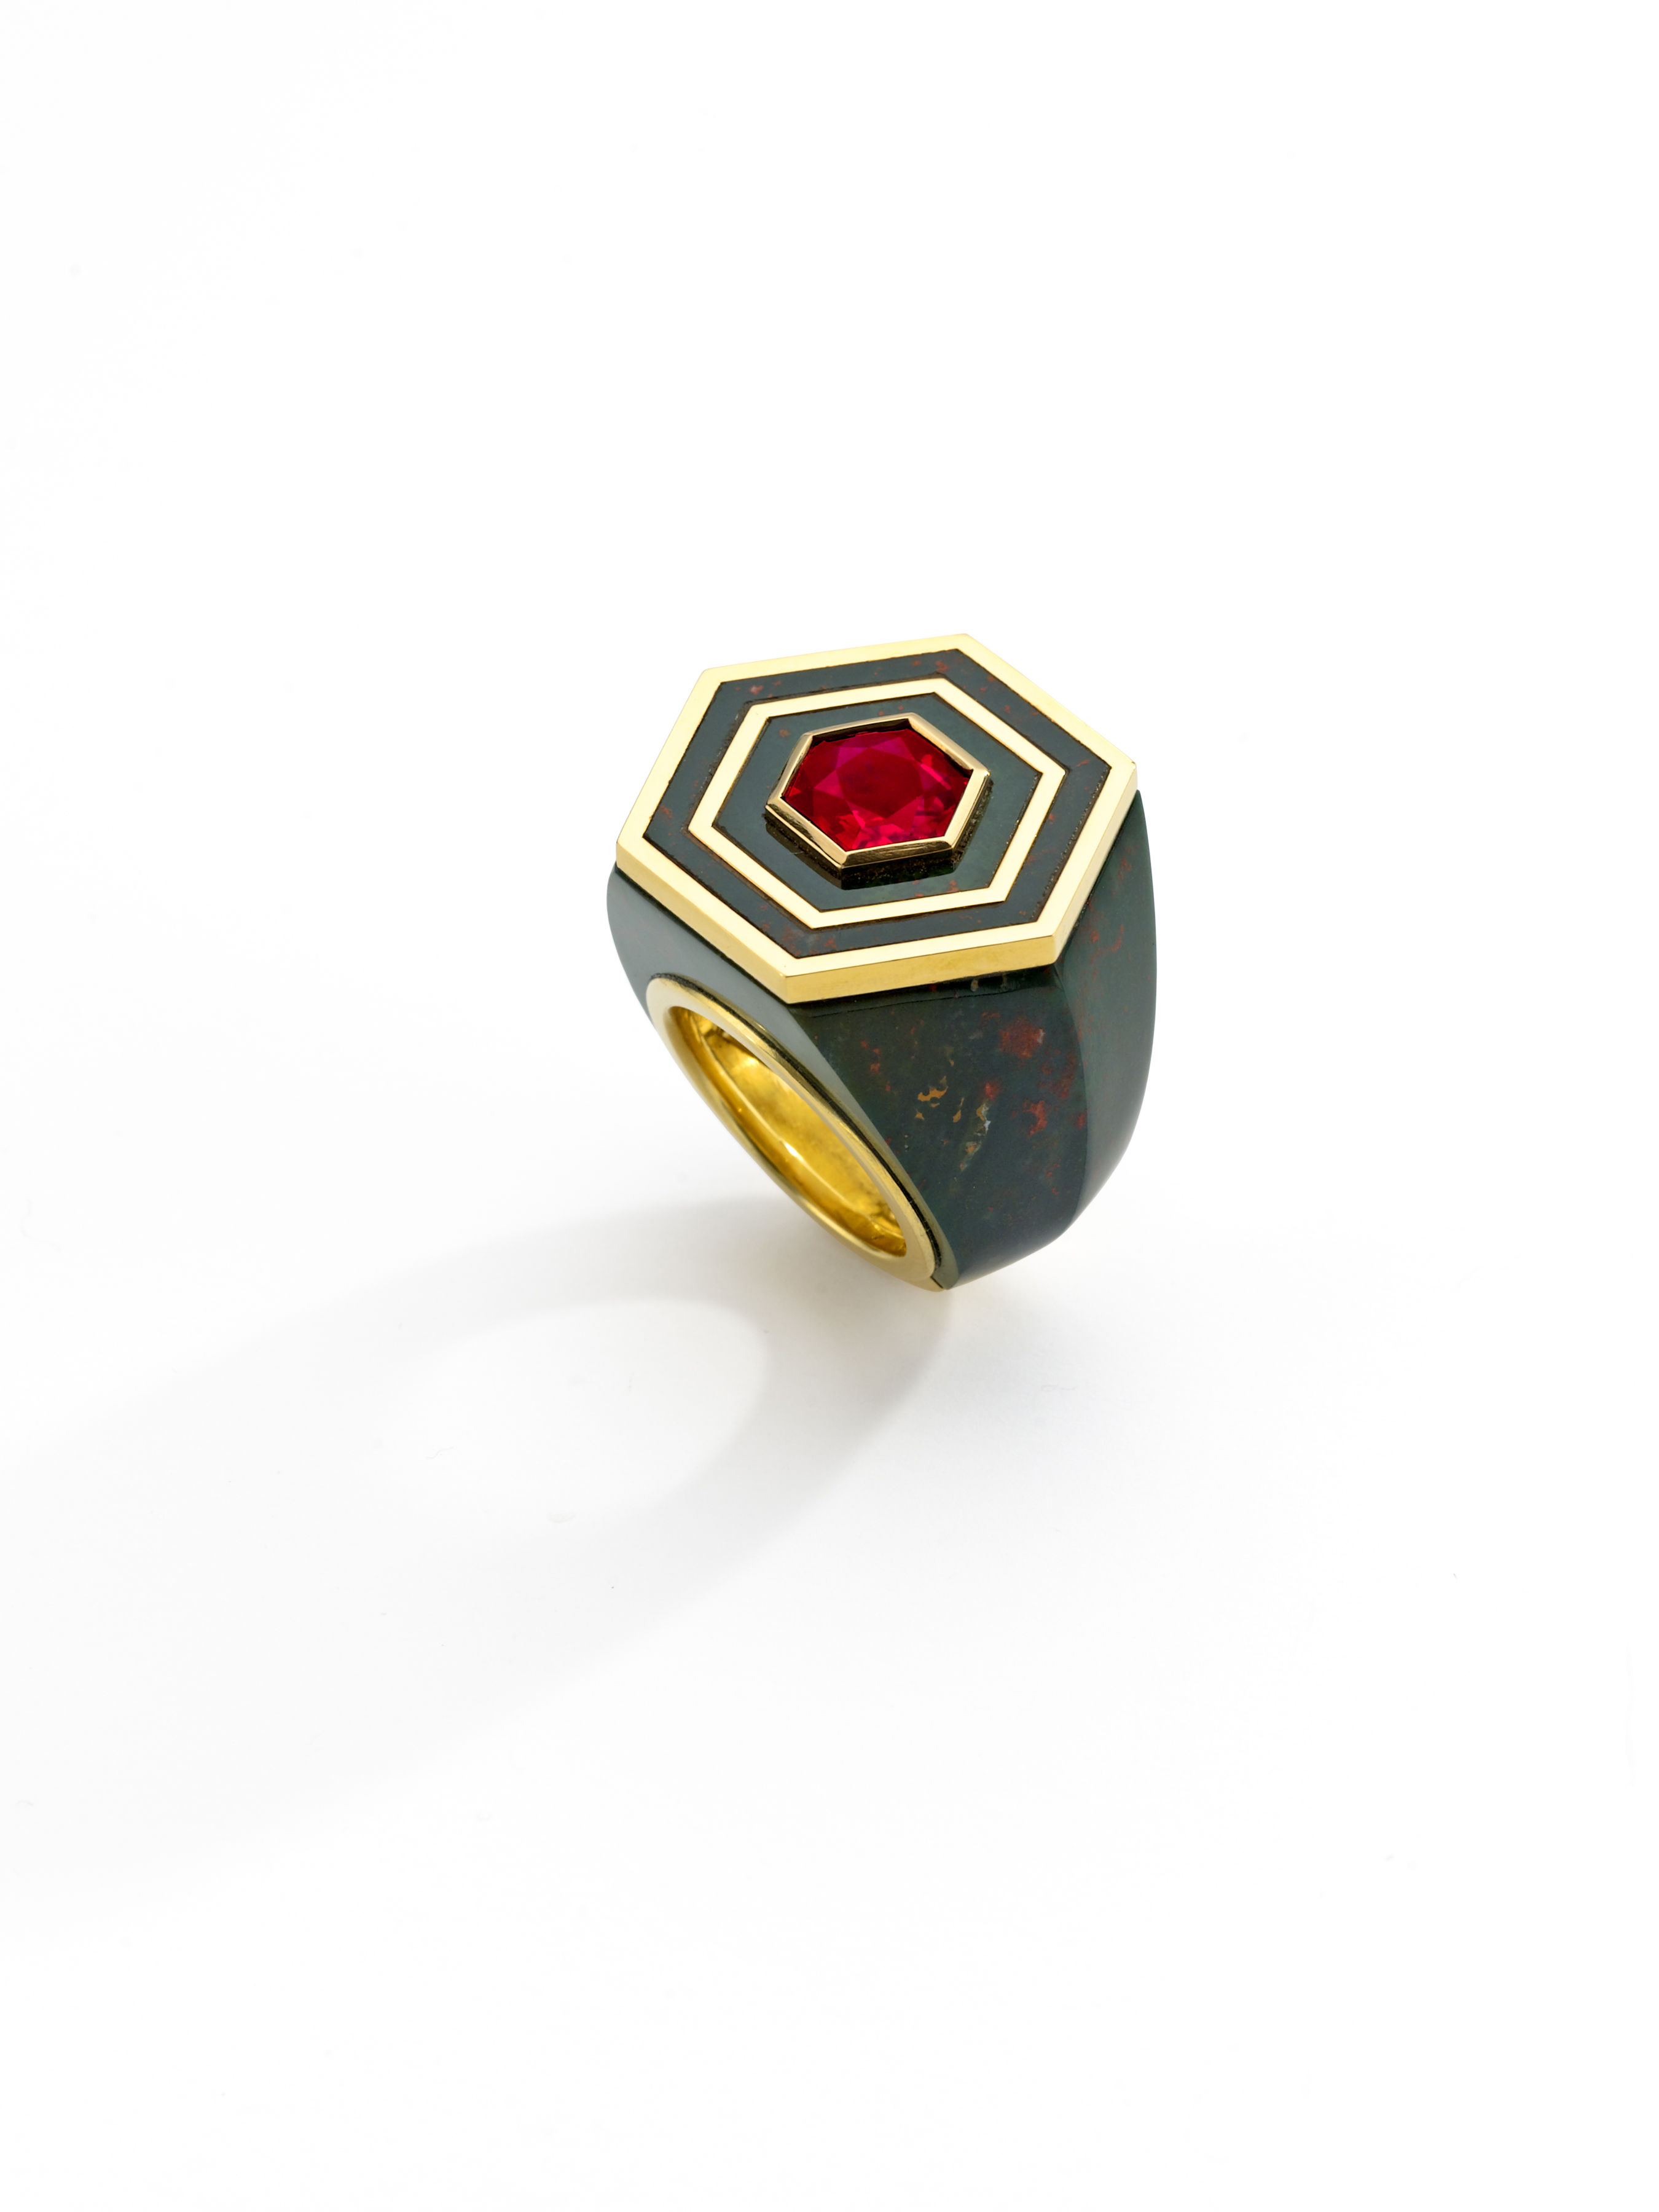 Ring_Hexagonal Rudy and Bloodstone Ring